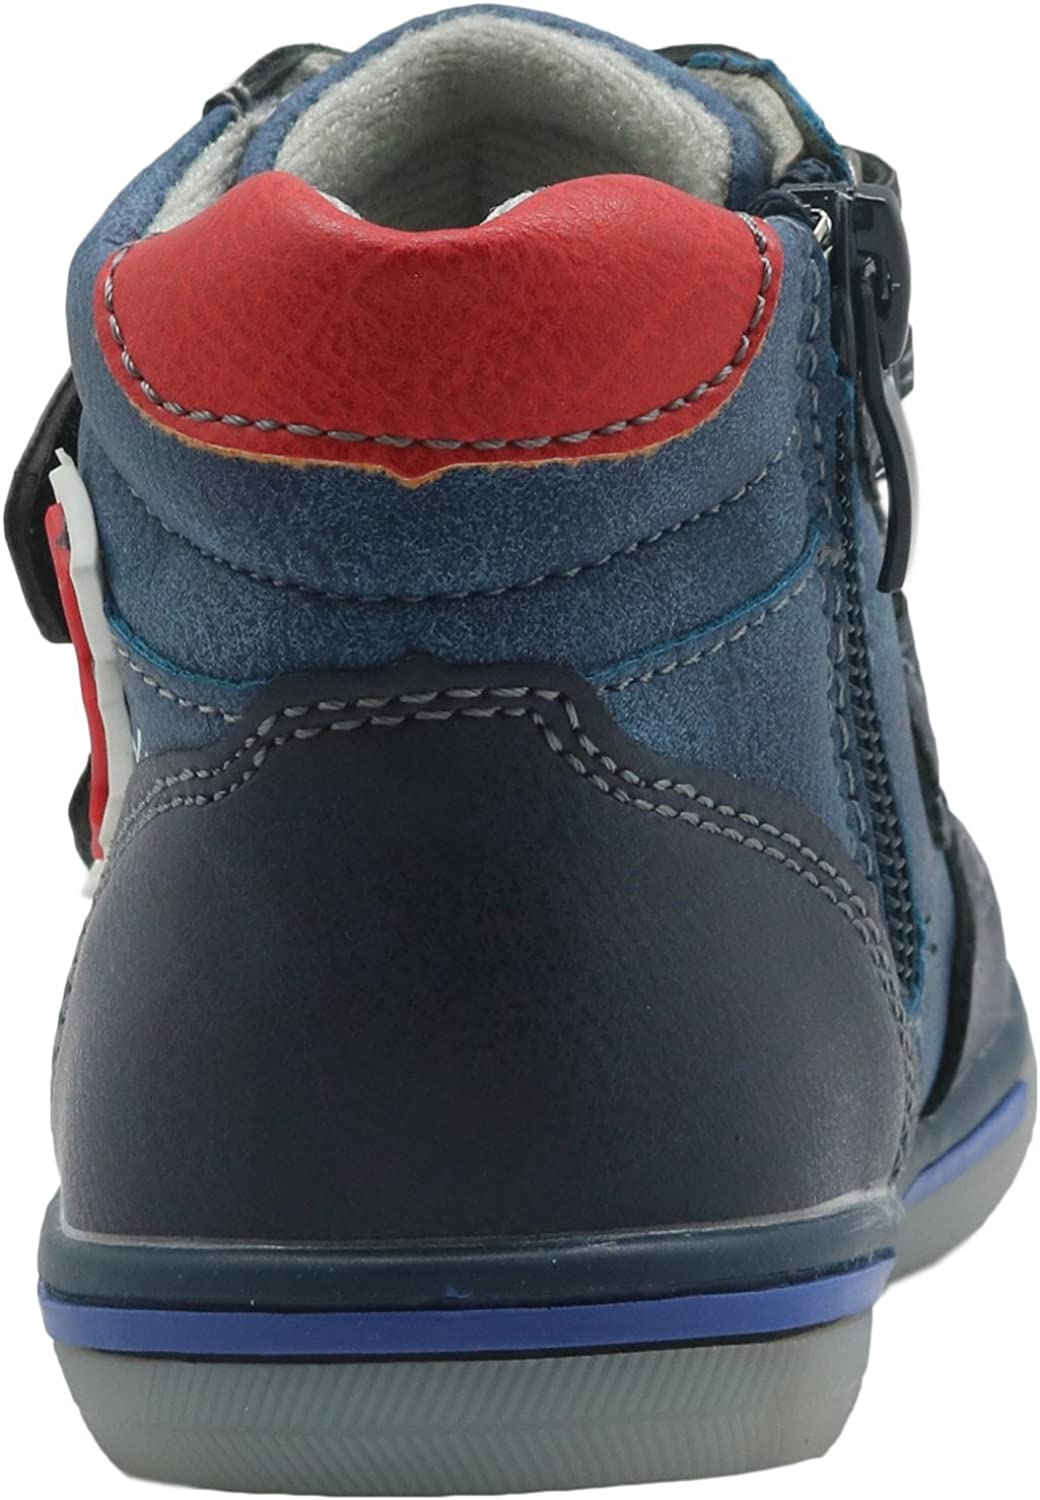 Apakowa Toddler Boys Boots High Top Sneakers